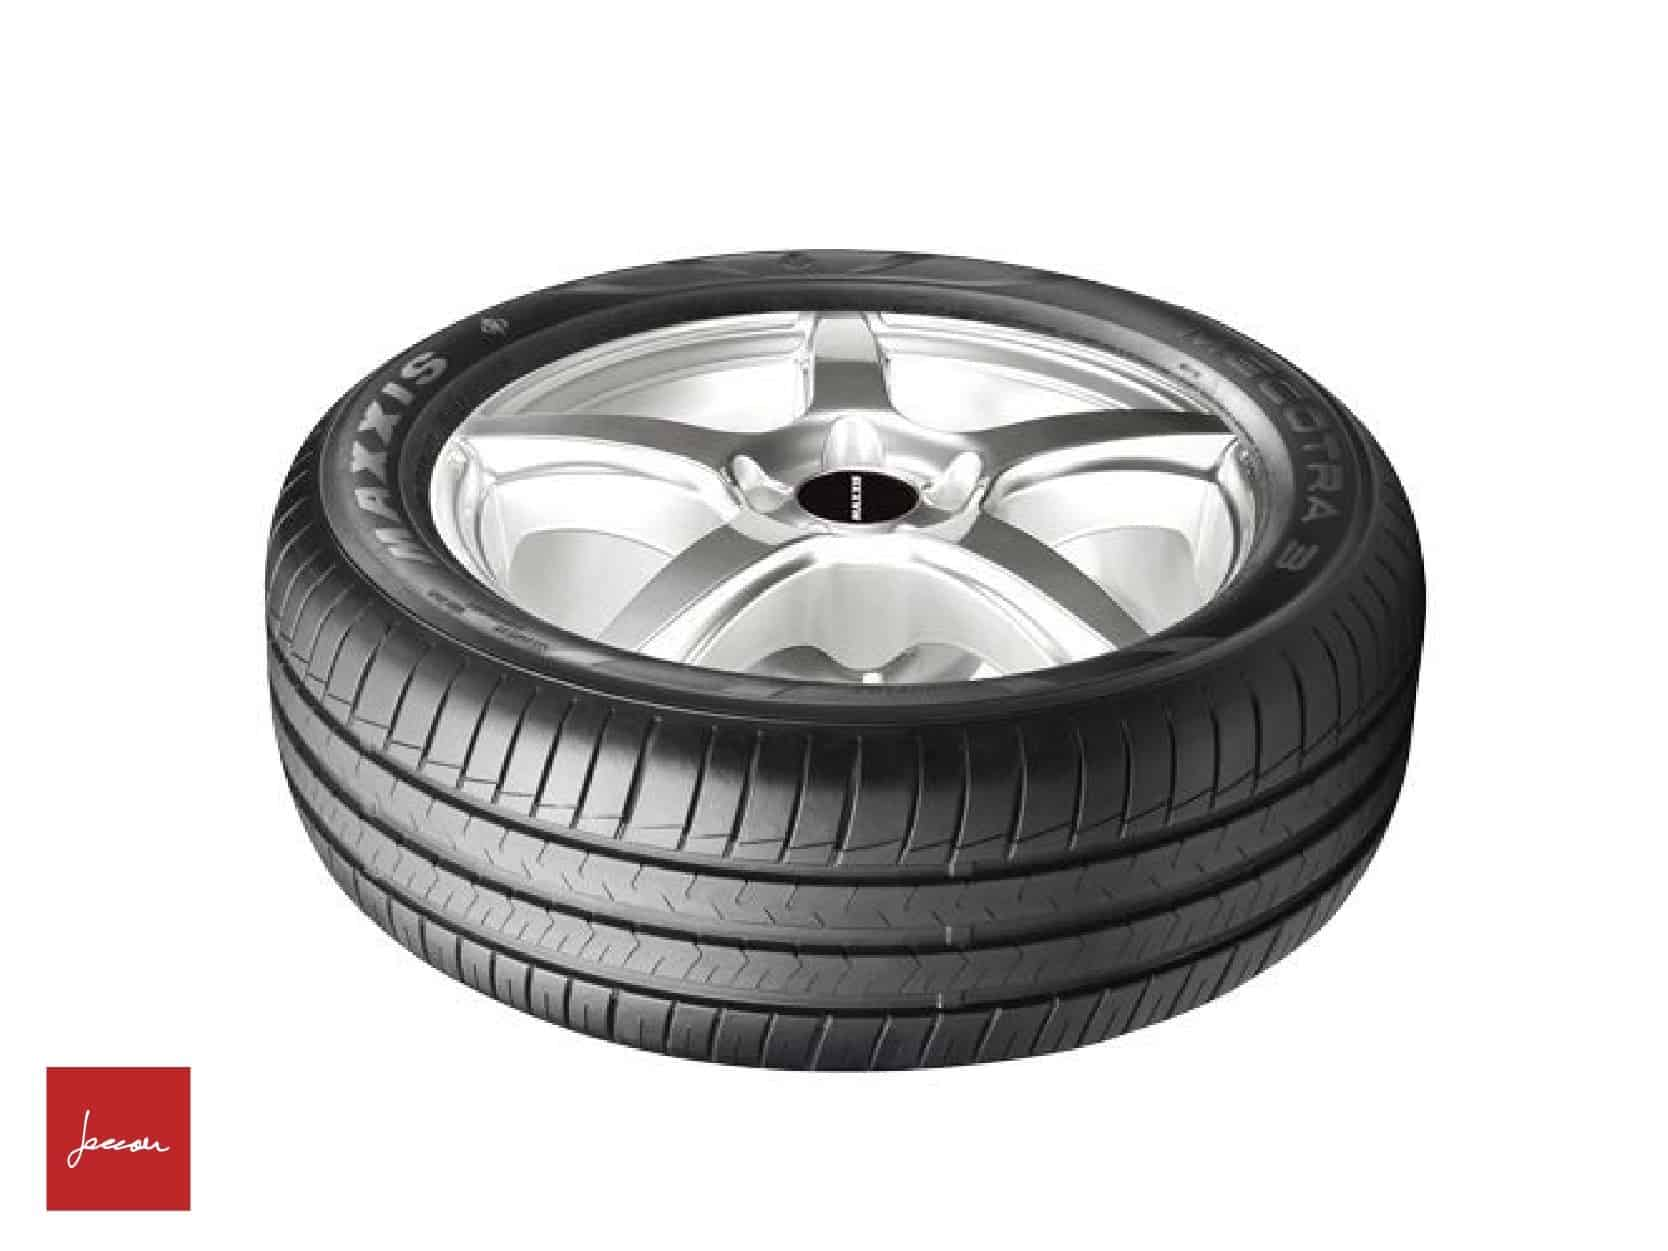 1x Pneumatici gomme Pneumatico estivo Maxxis Mecotra ME3 185//65R15 88T